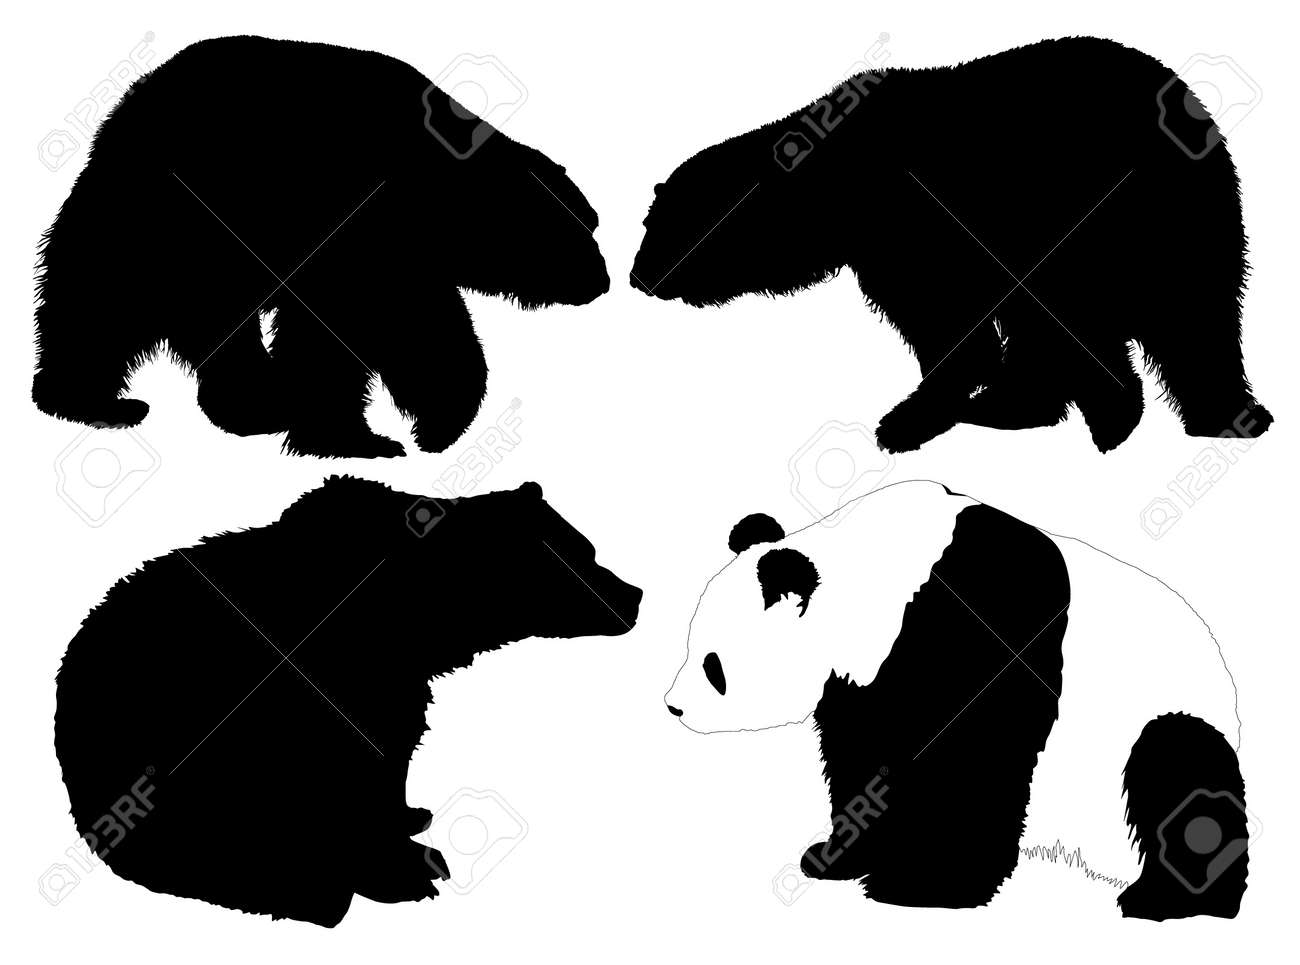 bear silhouette stock photos royalty free bear silhouette images  - bear silhouette bear silhouette on white background